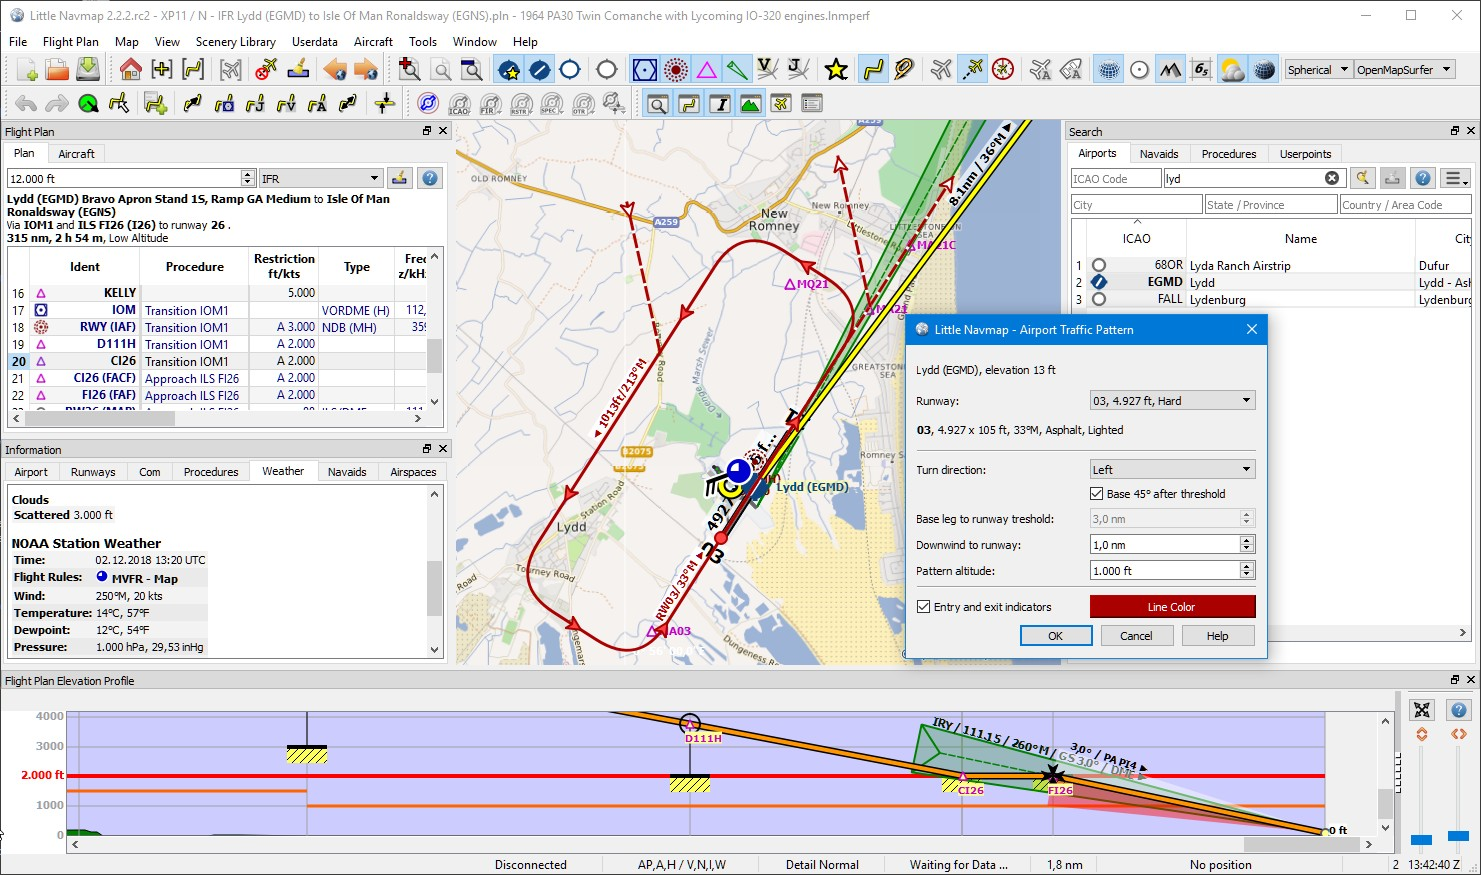 Little Navmap 2.2.2 airport traffic pattern and elevation profile with ILS and VASI